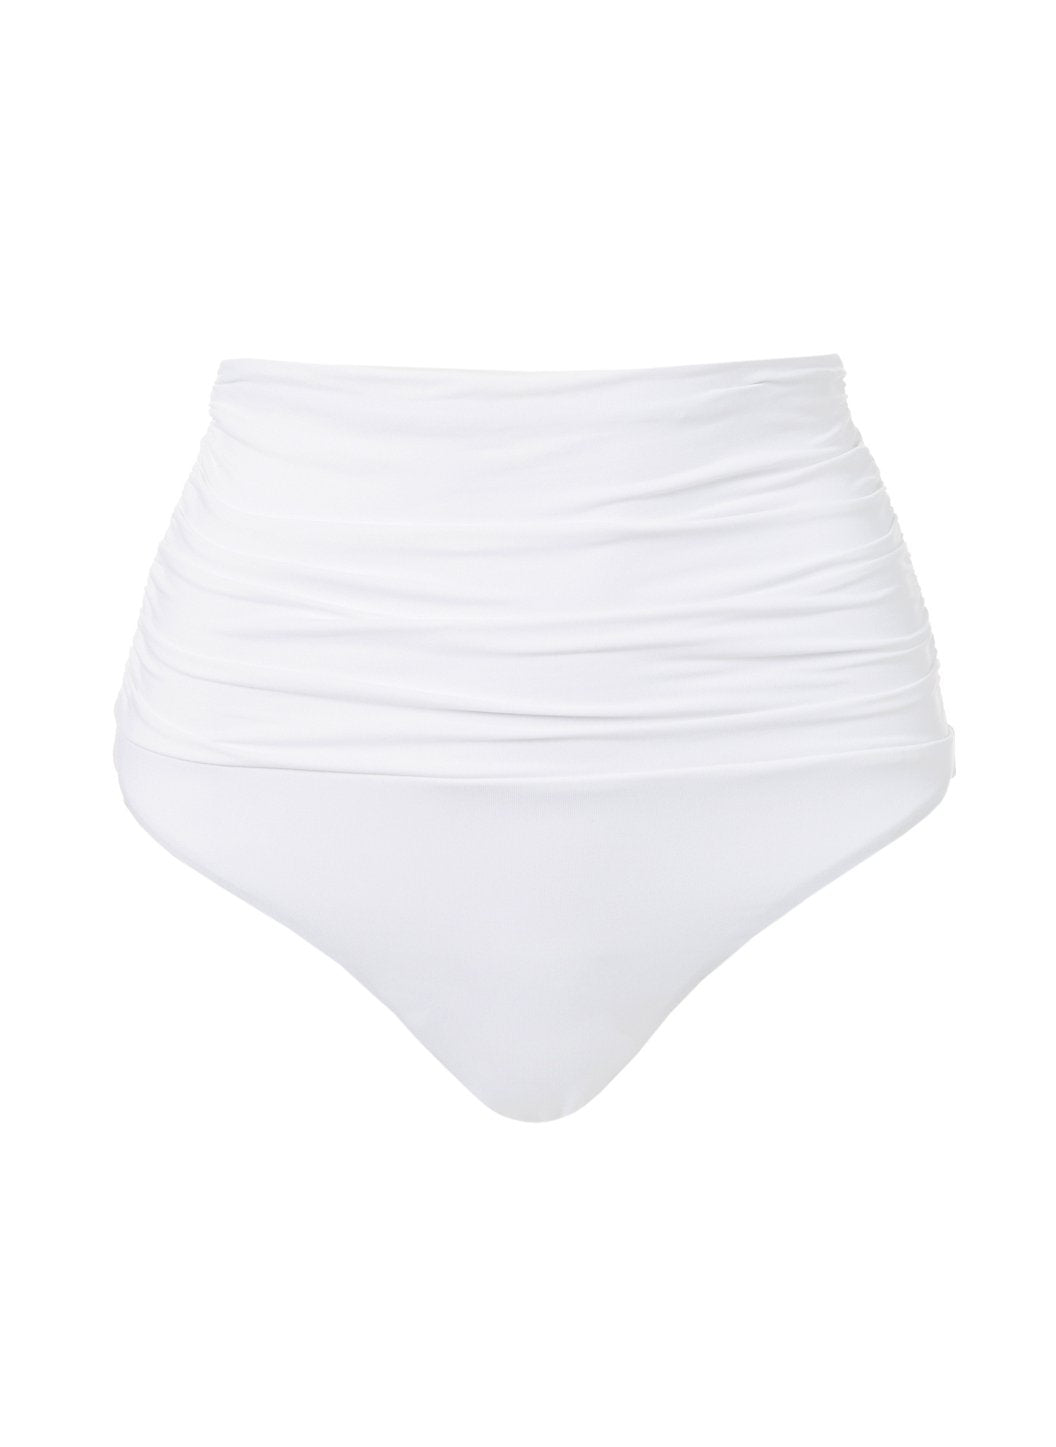 Lyon White High Waisted Ruched Bikini Bottom